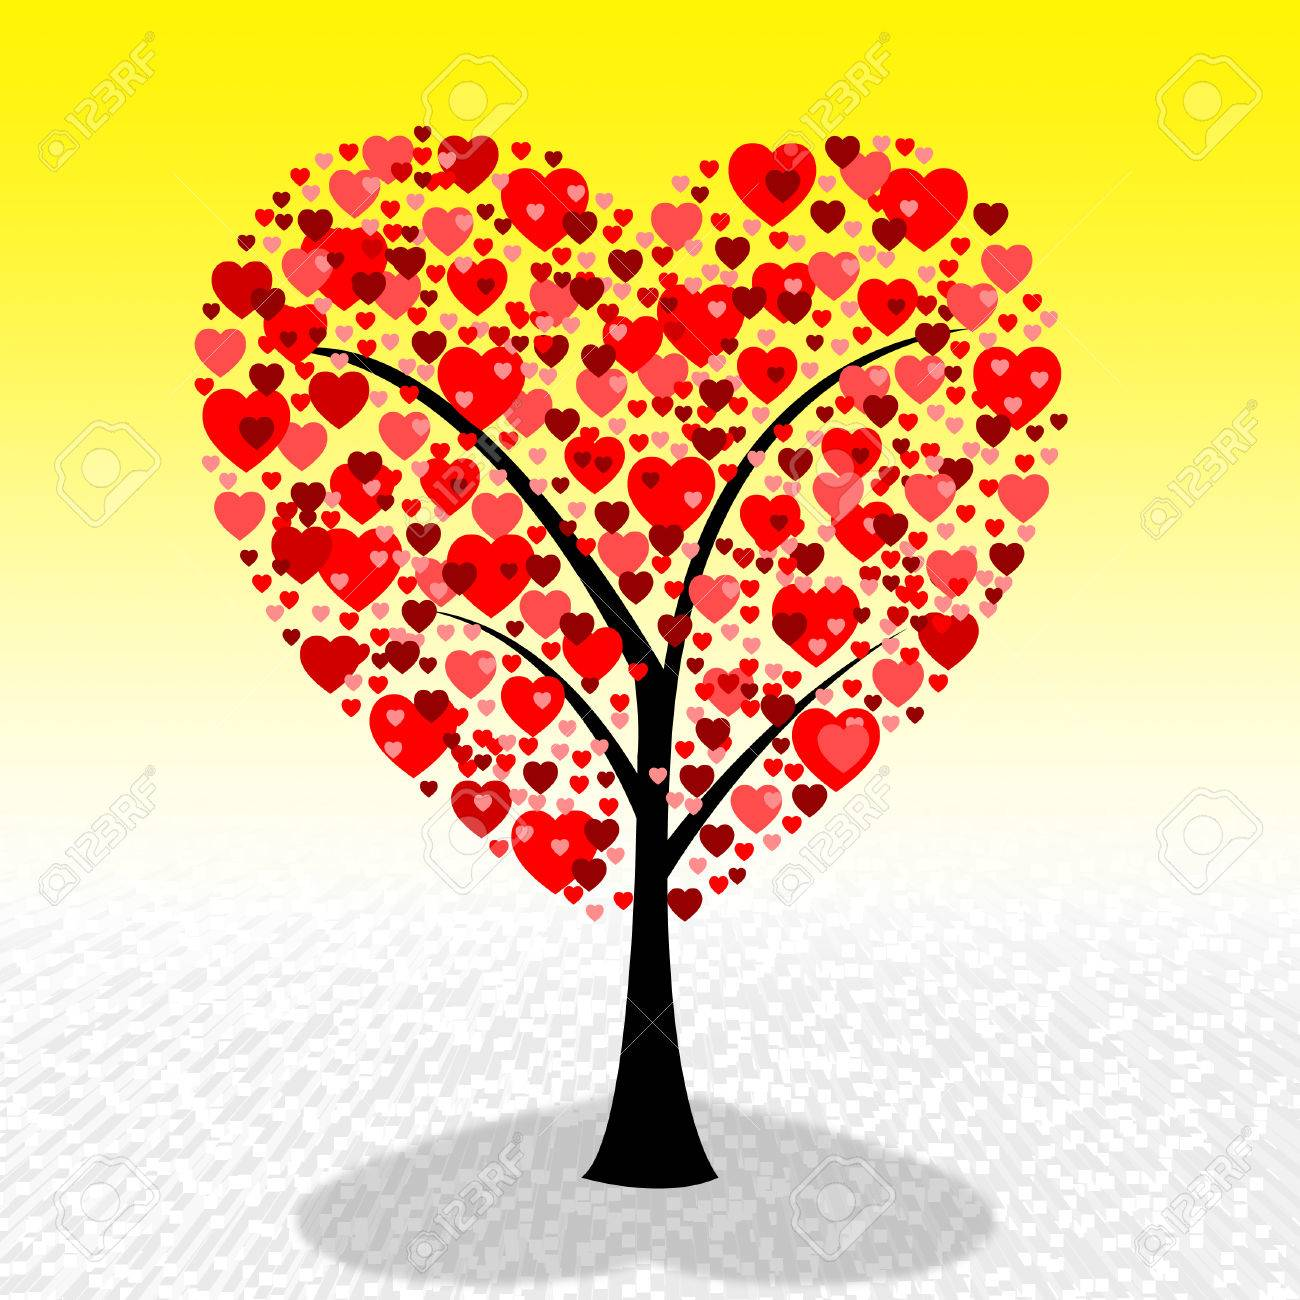 Hearts Tree Meaning Valentine S Day And Lovers Stock Photo Picture